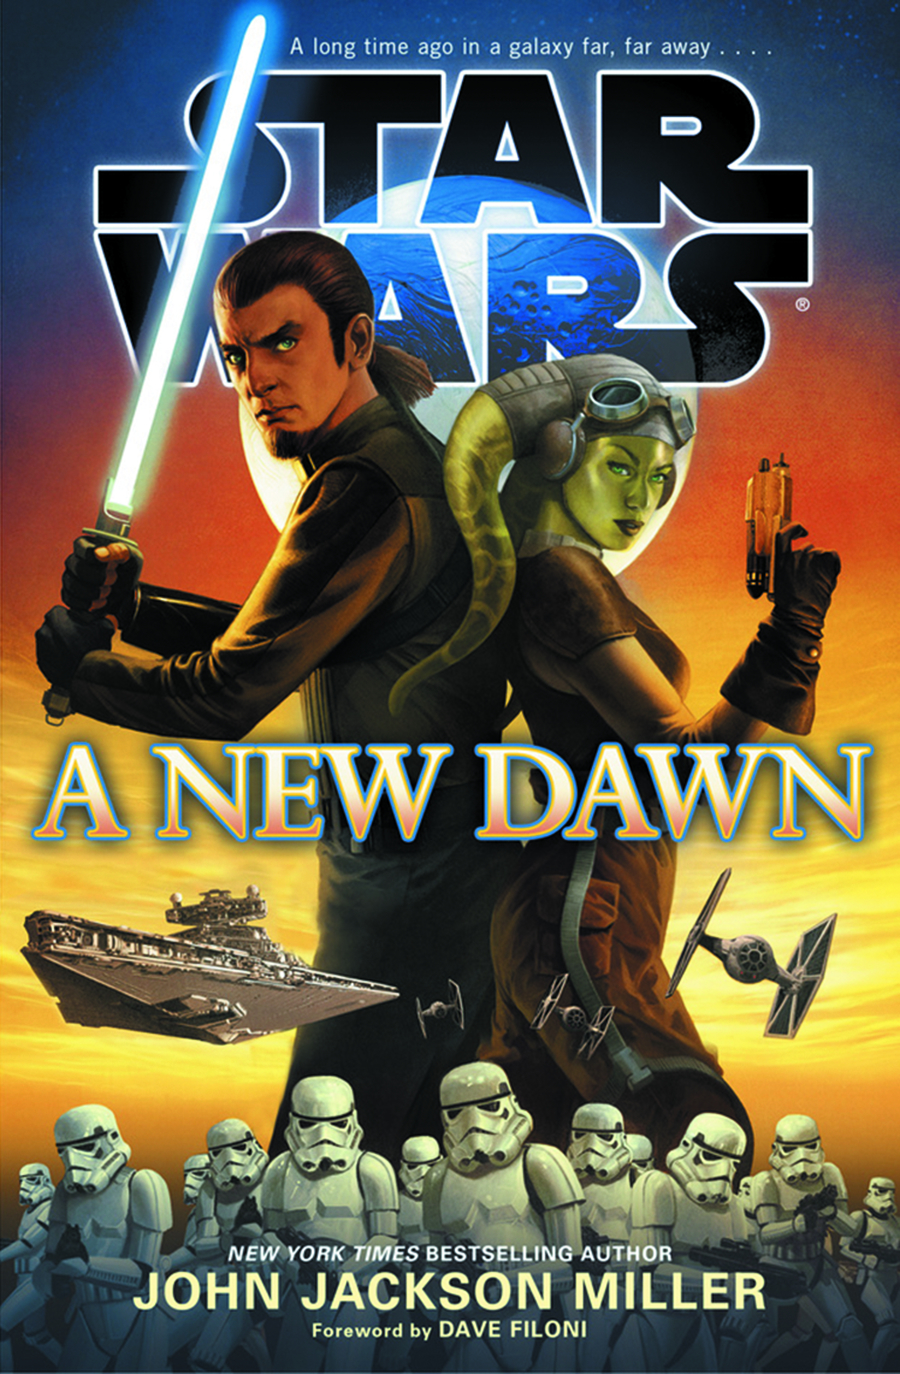 A NEW DAWN STAR WARS HC